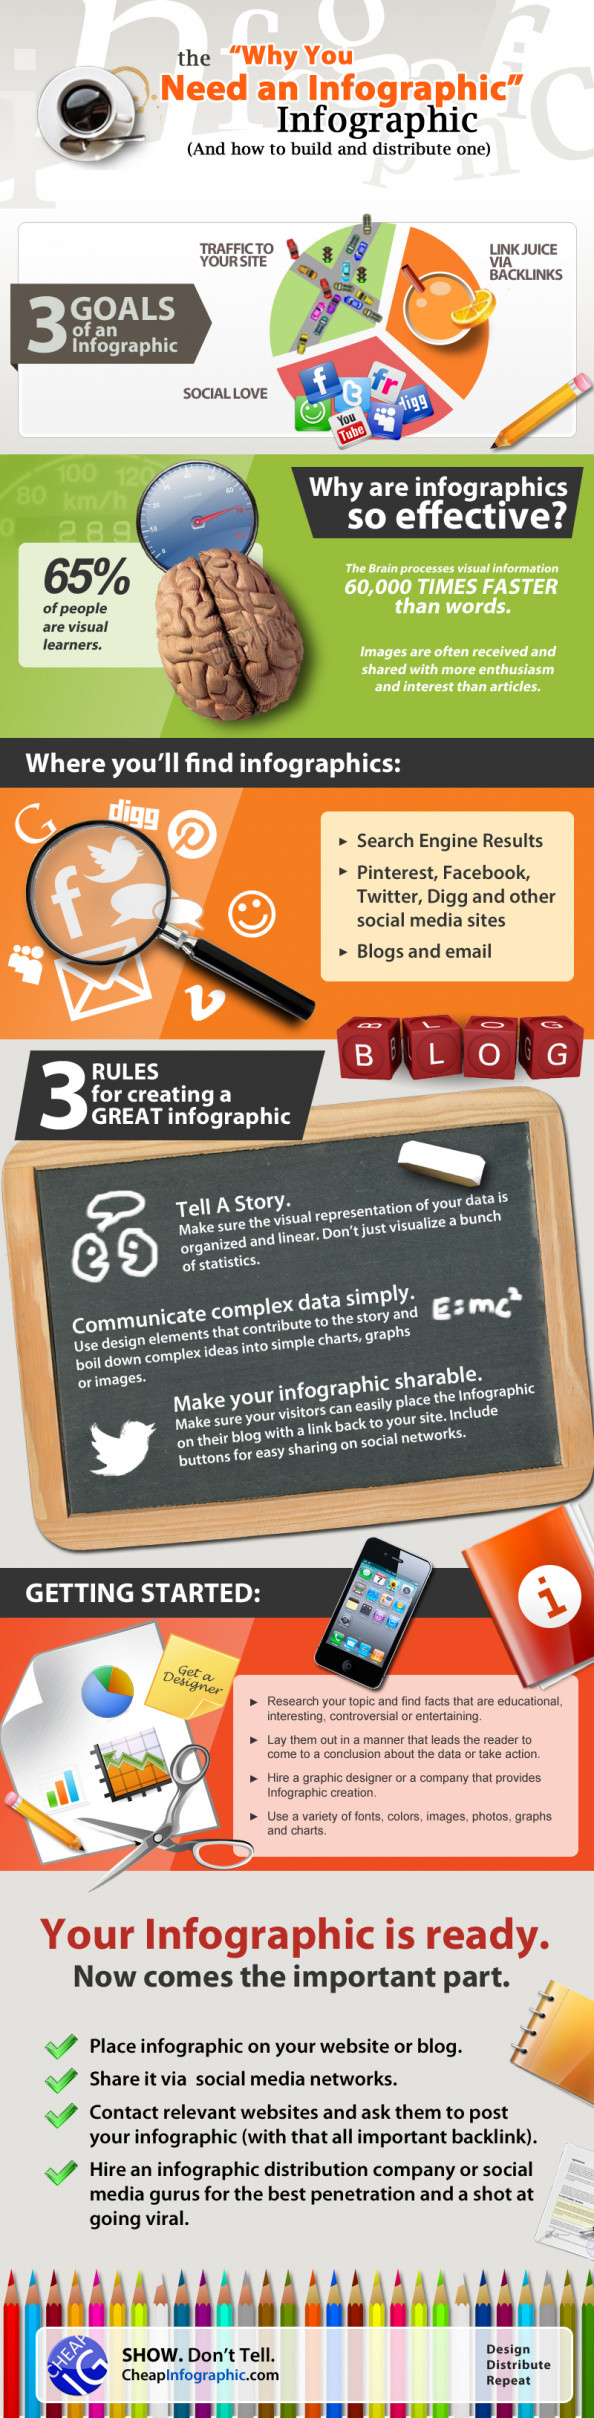 The &quot;Why You Need an Infographic&quot; Infographic Infographic